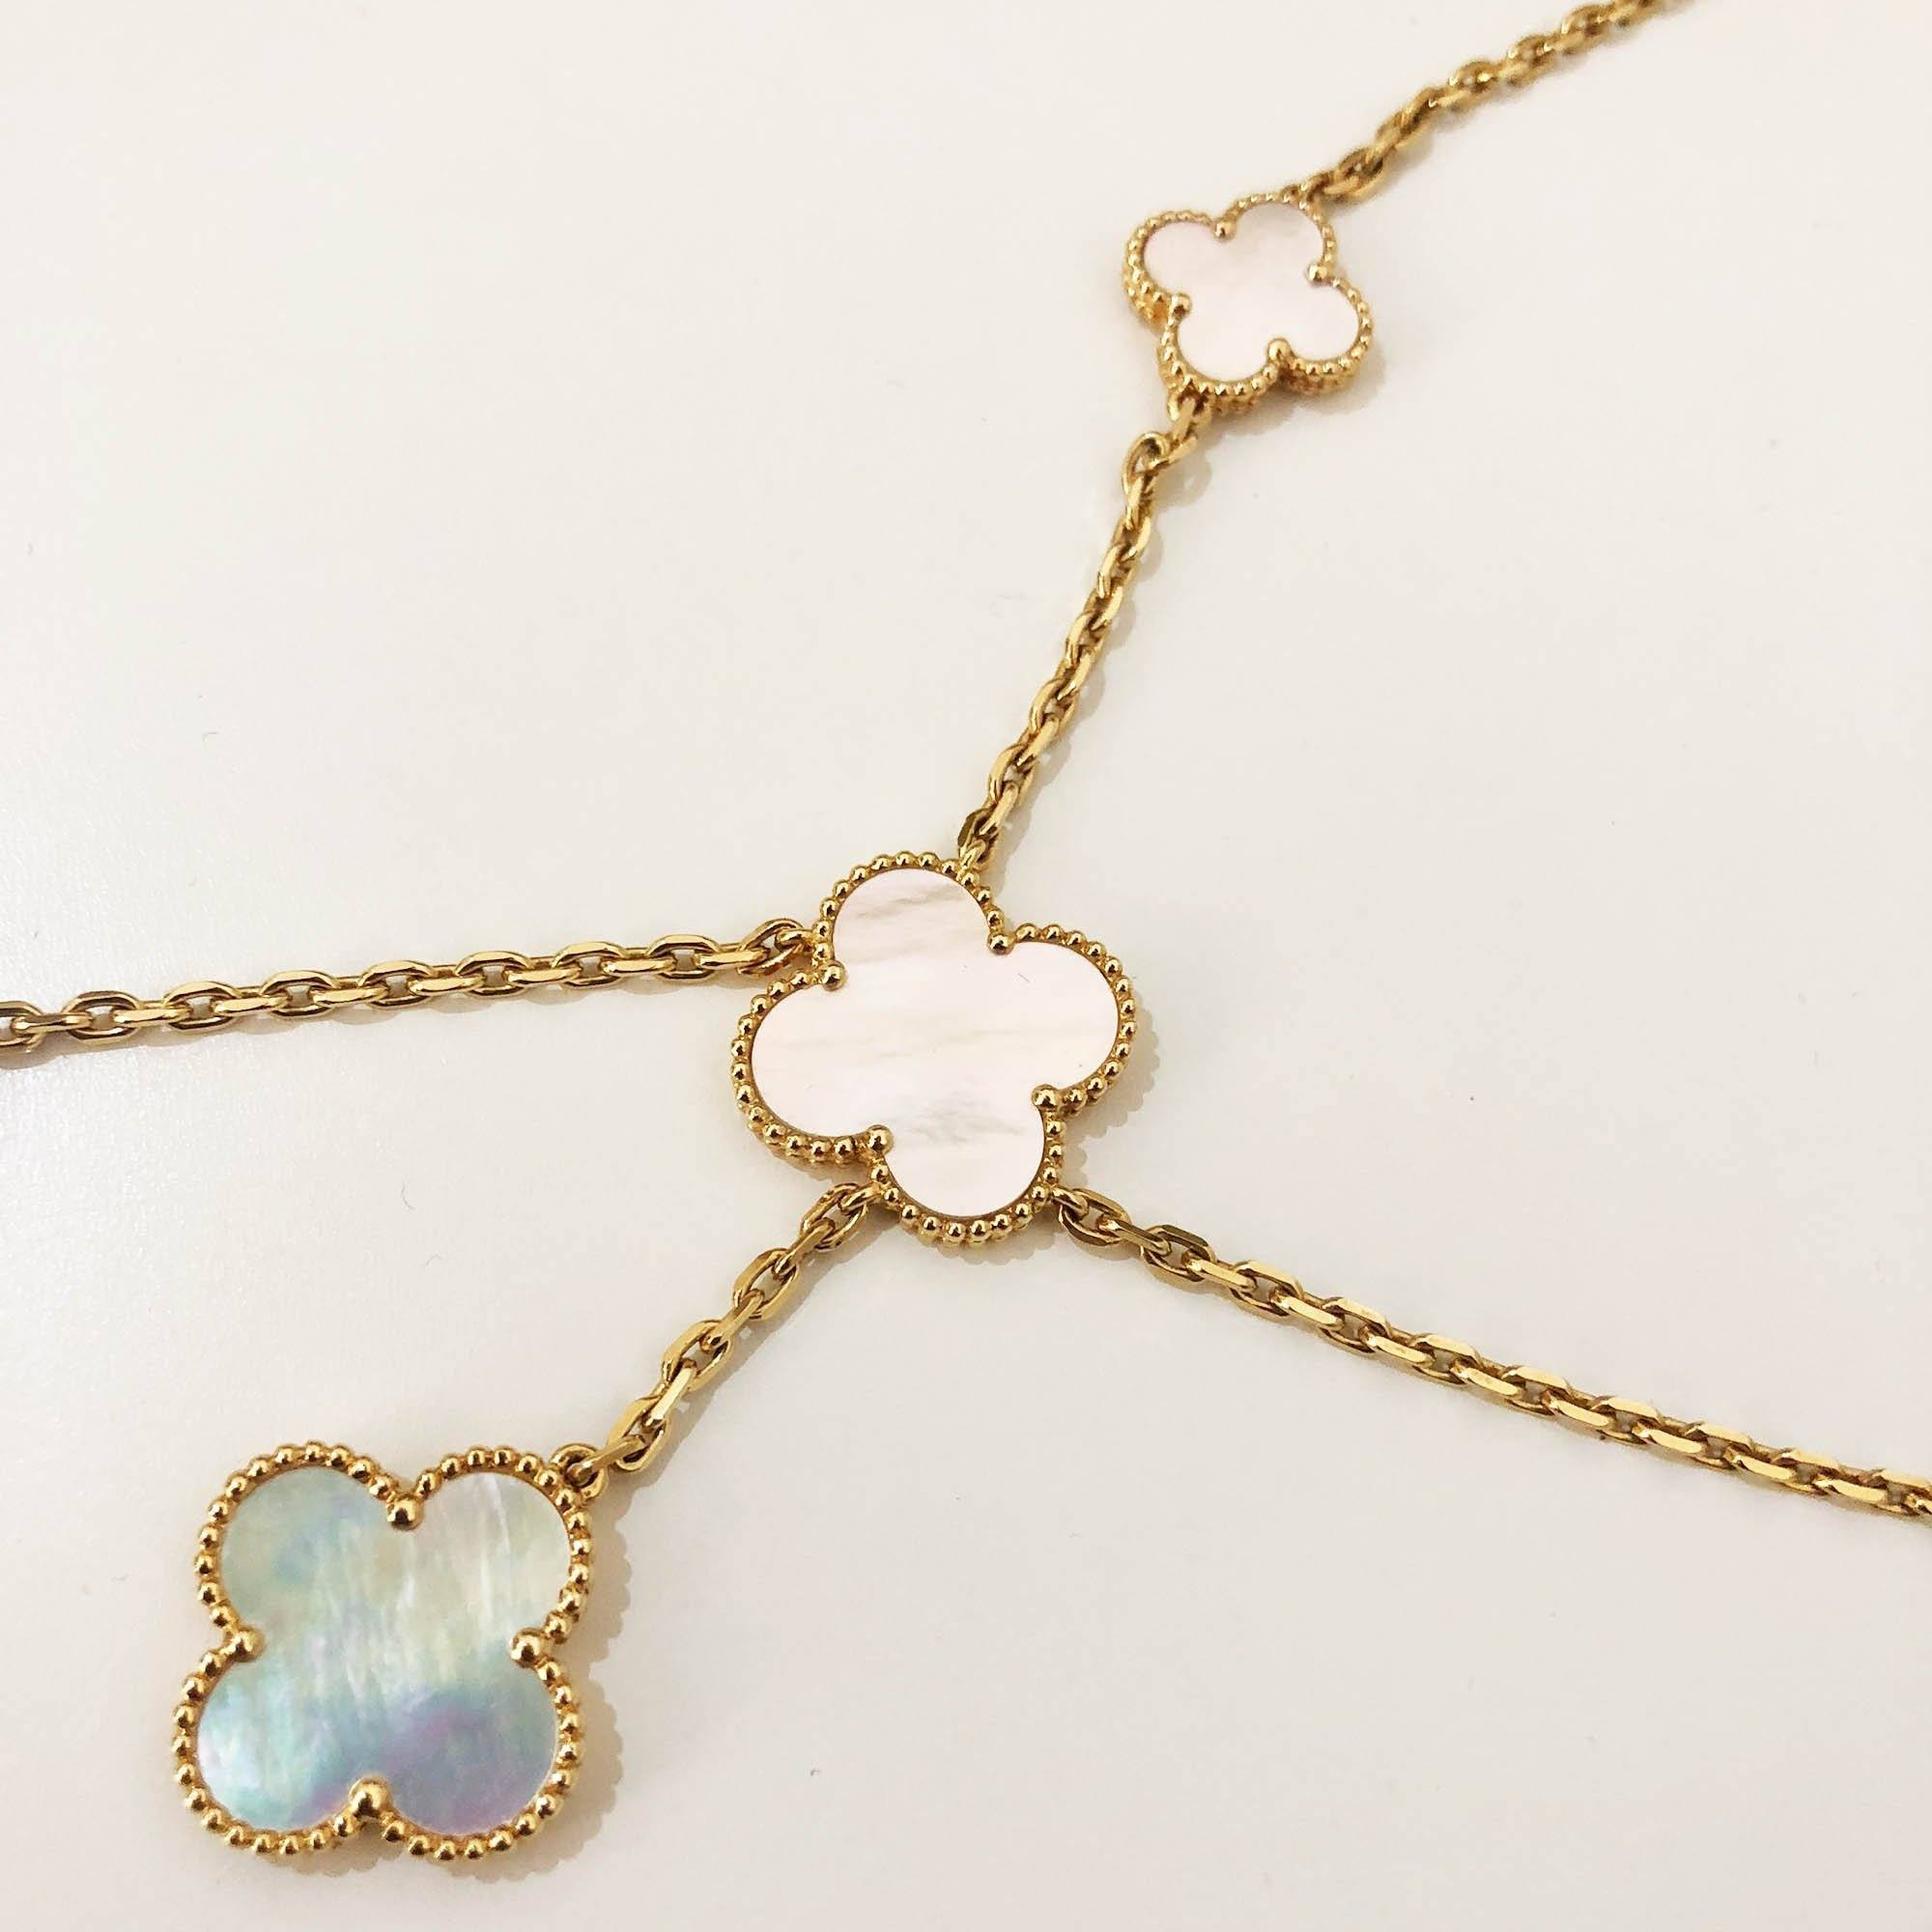 Van Cleef & Arpels 18k Gold Mother of Pearl Magic Alhambra 6 Motifs Necklace